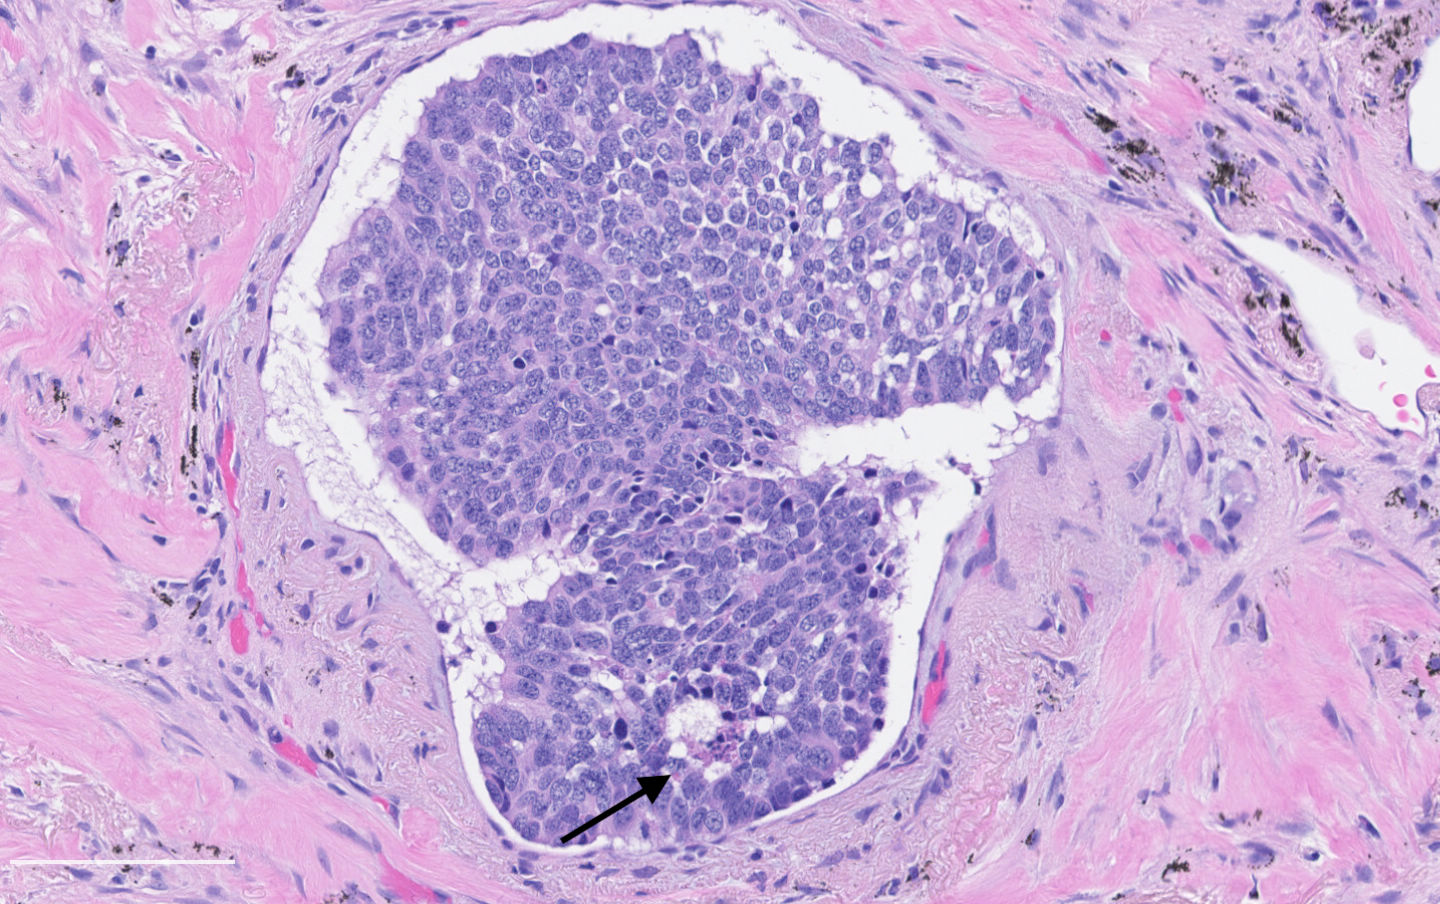 Lymphovascular invasion with punctate necrosis